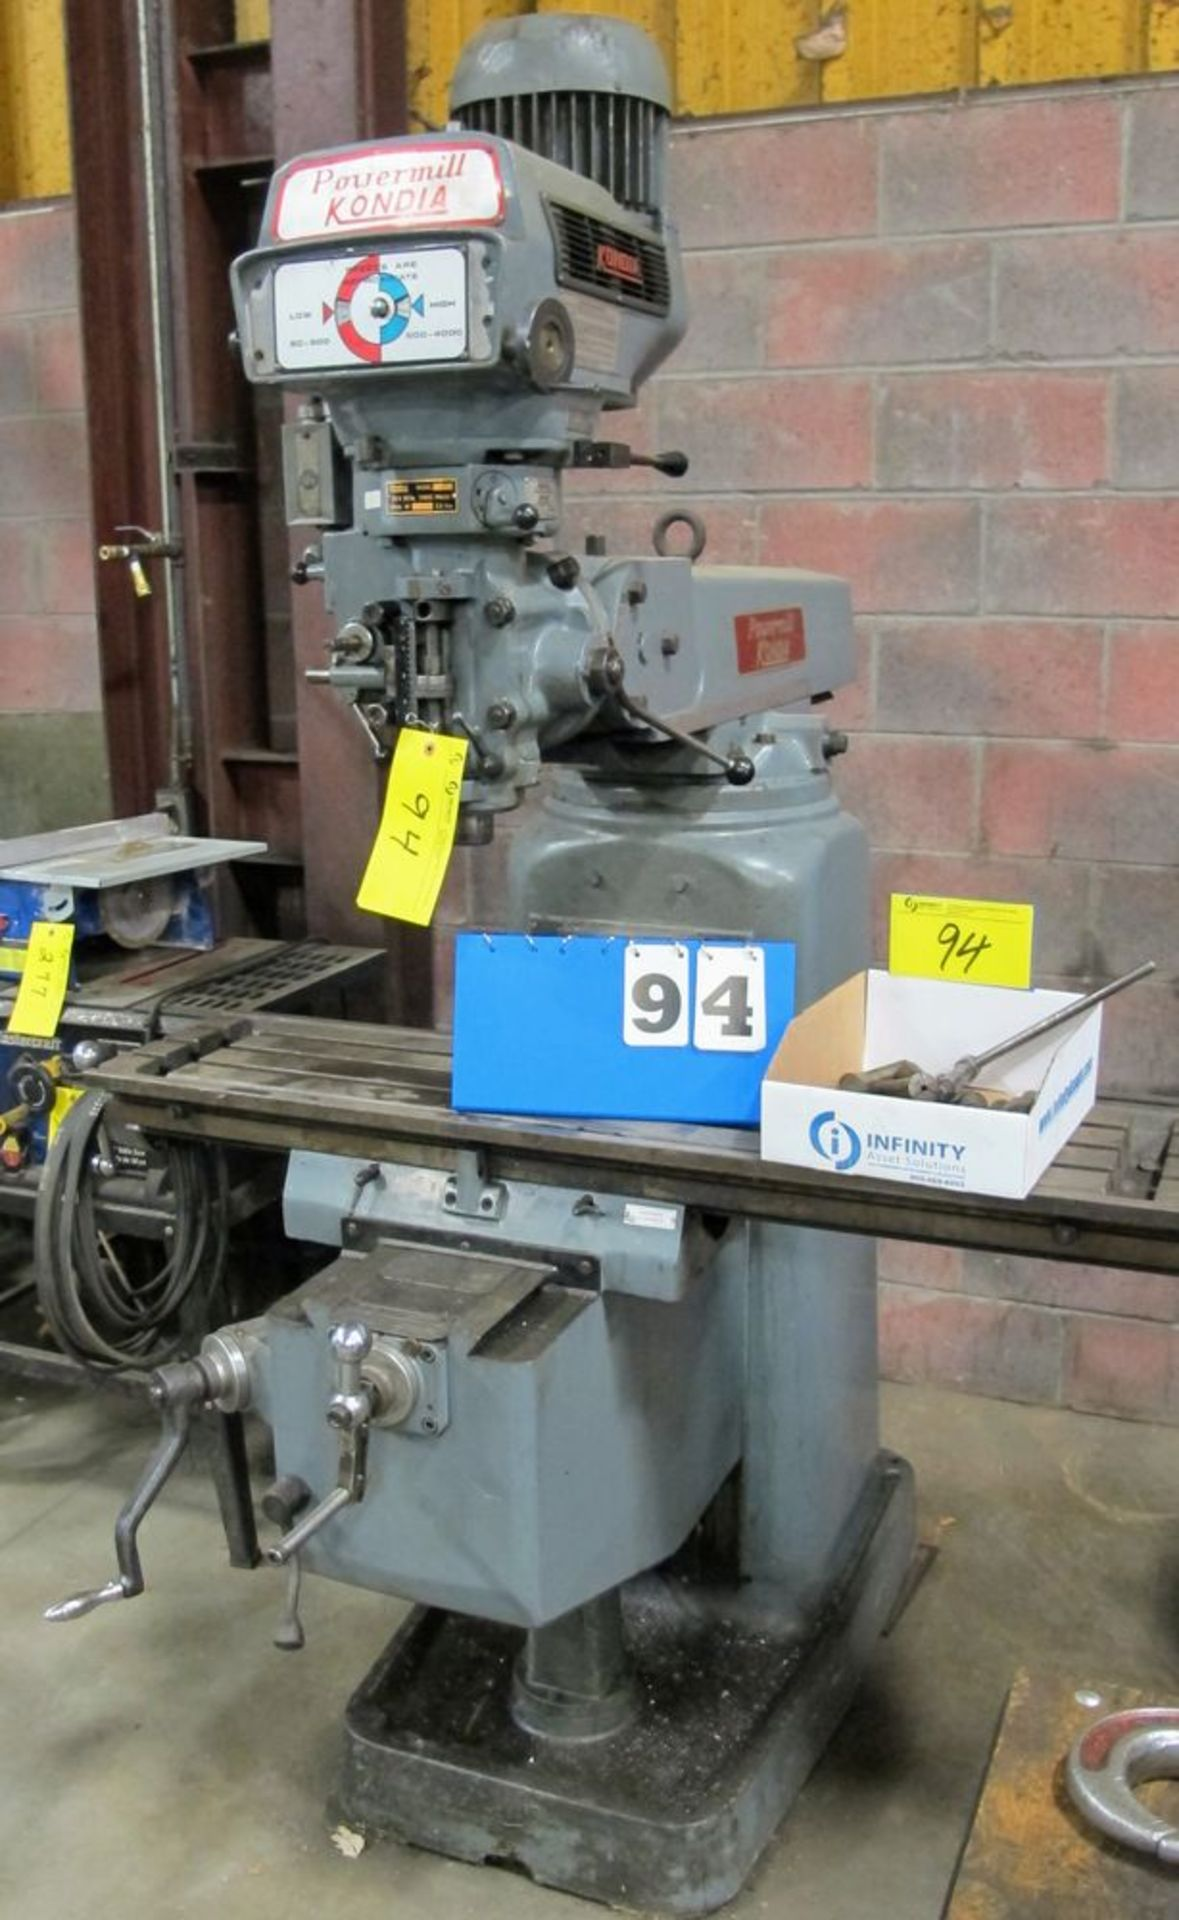 "Lot 94 - KONDIA FV-1 Vertical Milling Machine, 12"" x 48"" Table, 4,000 RPM, s/n T-711"